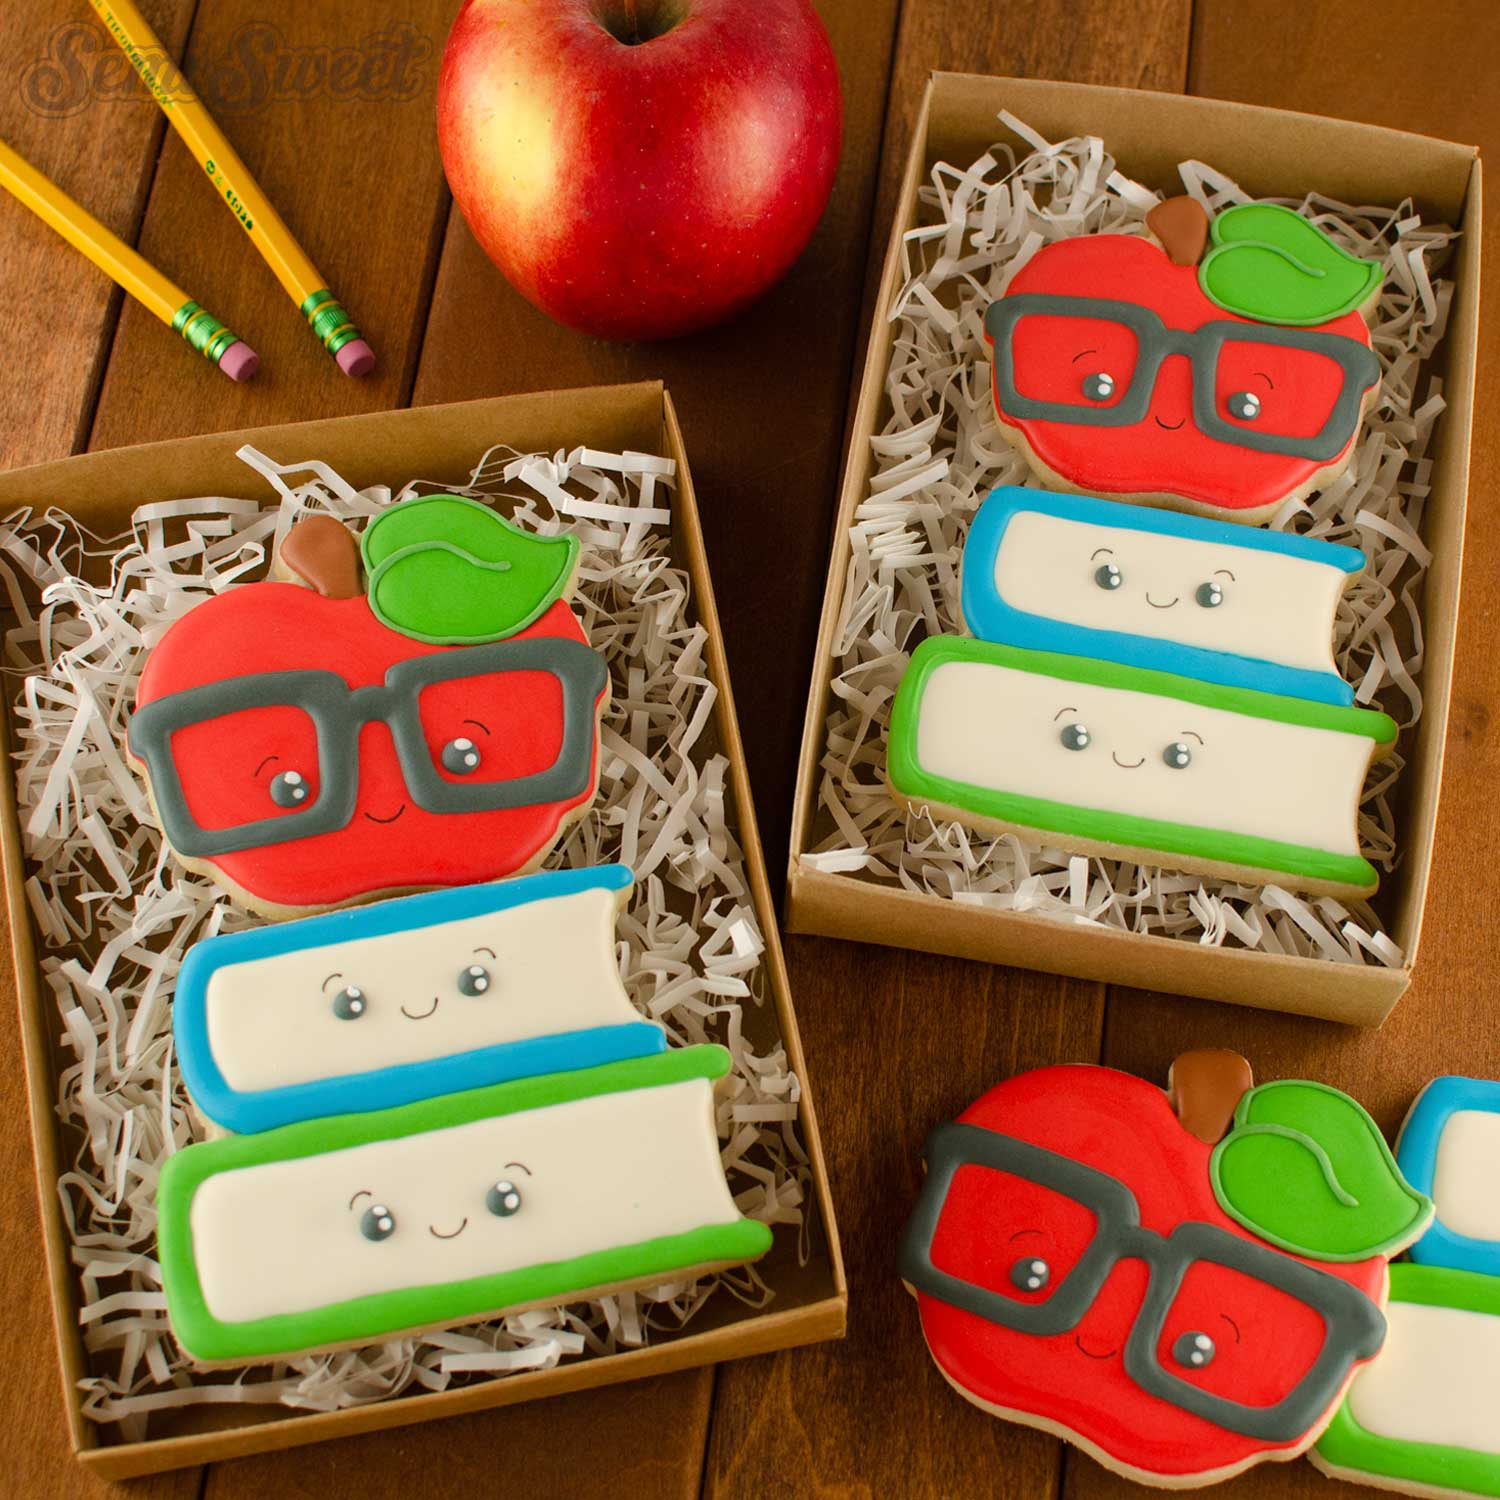 nerdy apple on books cookie set | Semi Sweet Designs